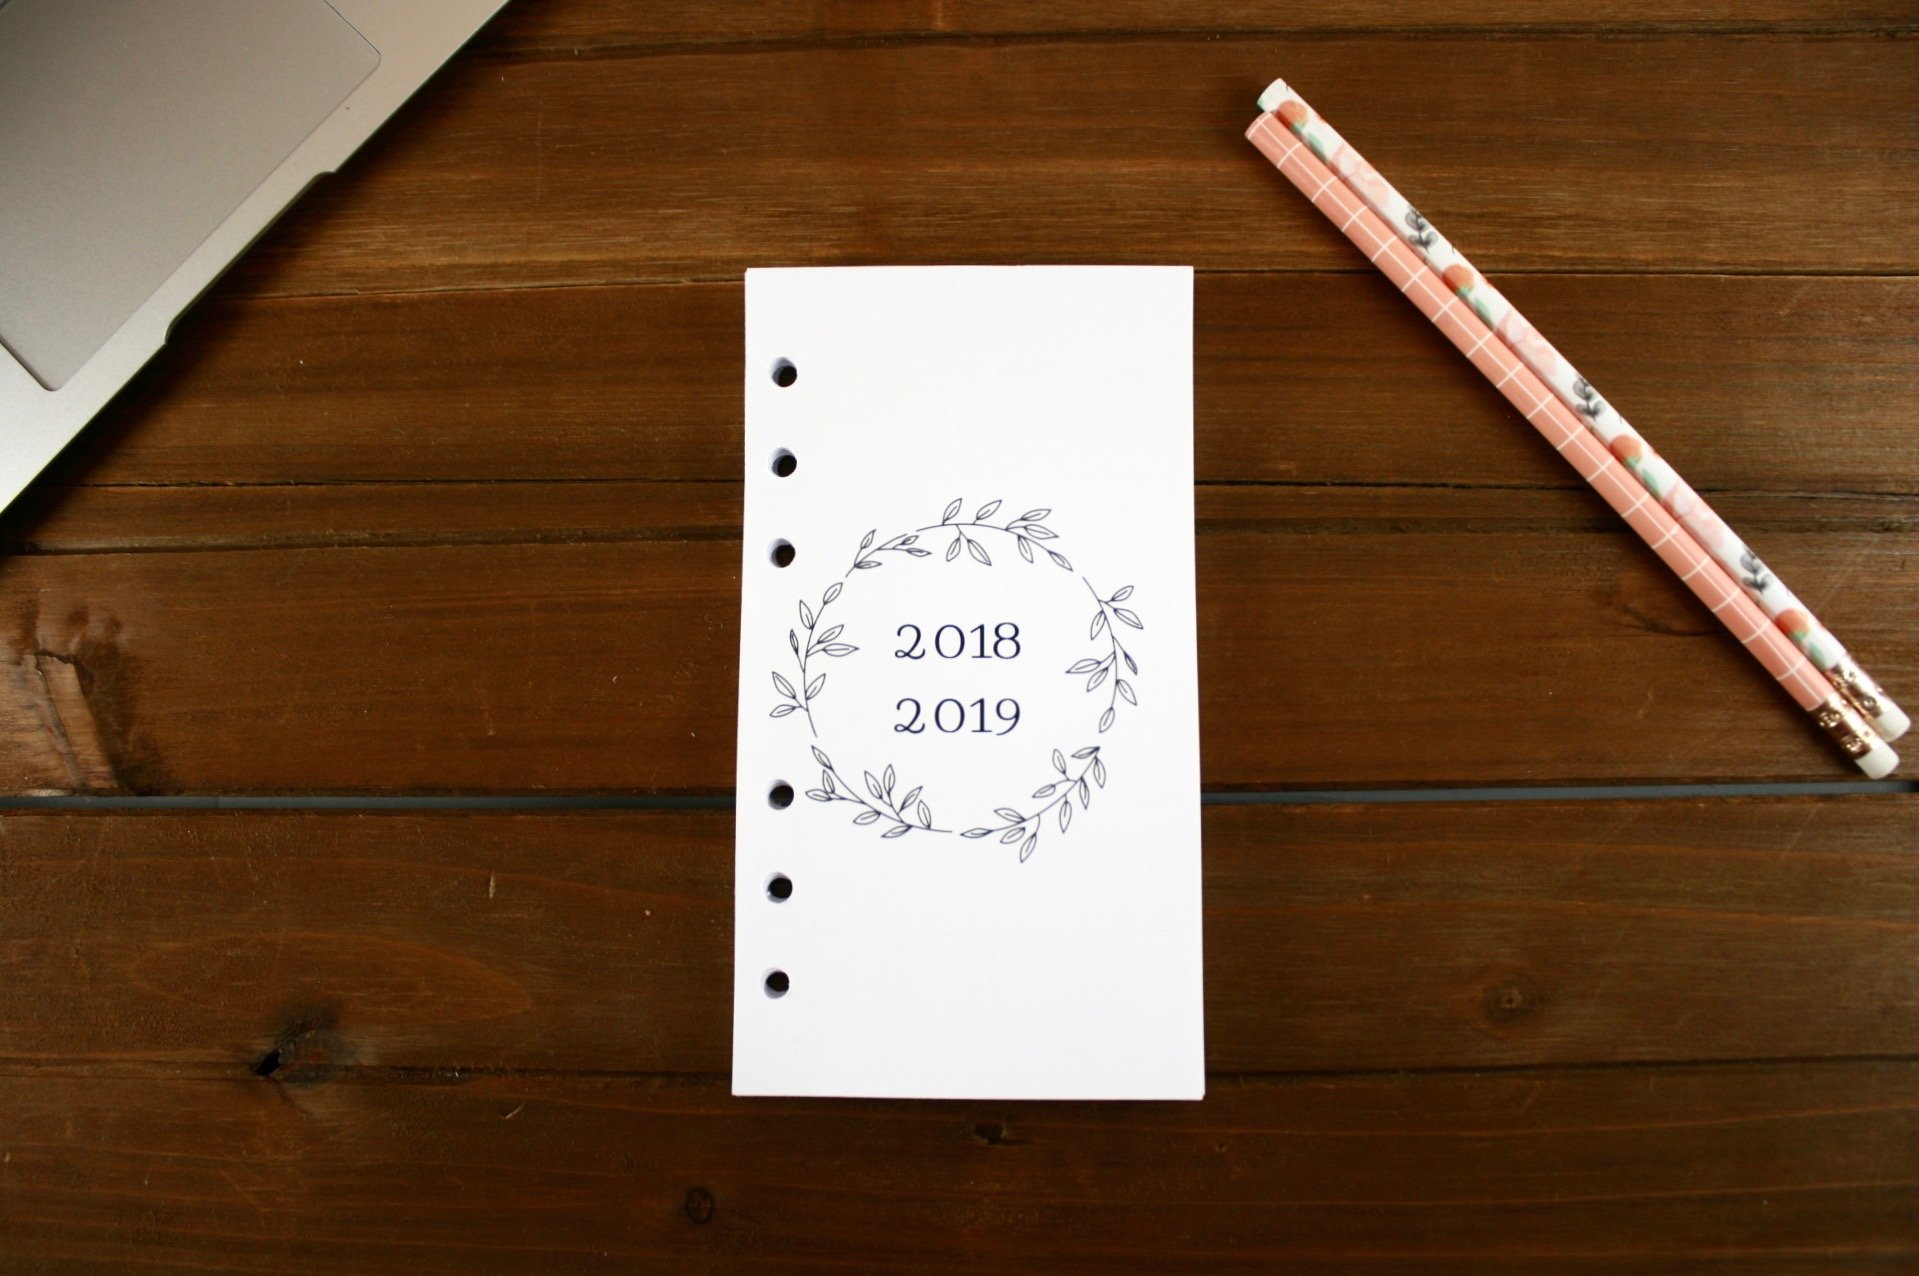 Personal Size 18 Month 2018-2019 Montly Refills (Dated JULY 2018-DECEMBER 2019), Personal Filofax 2018 Refill Pages, Personal Monthly Refills, Color Crush, Kate Spade 18 Month Calender Refill